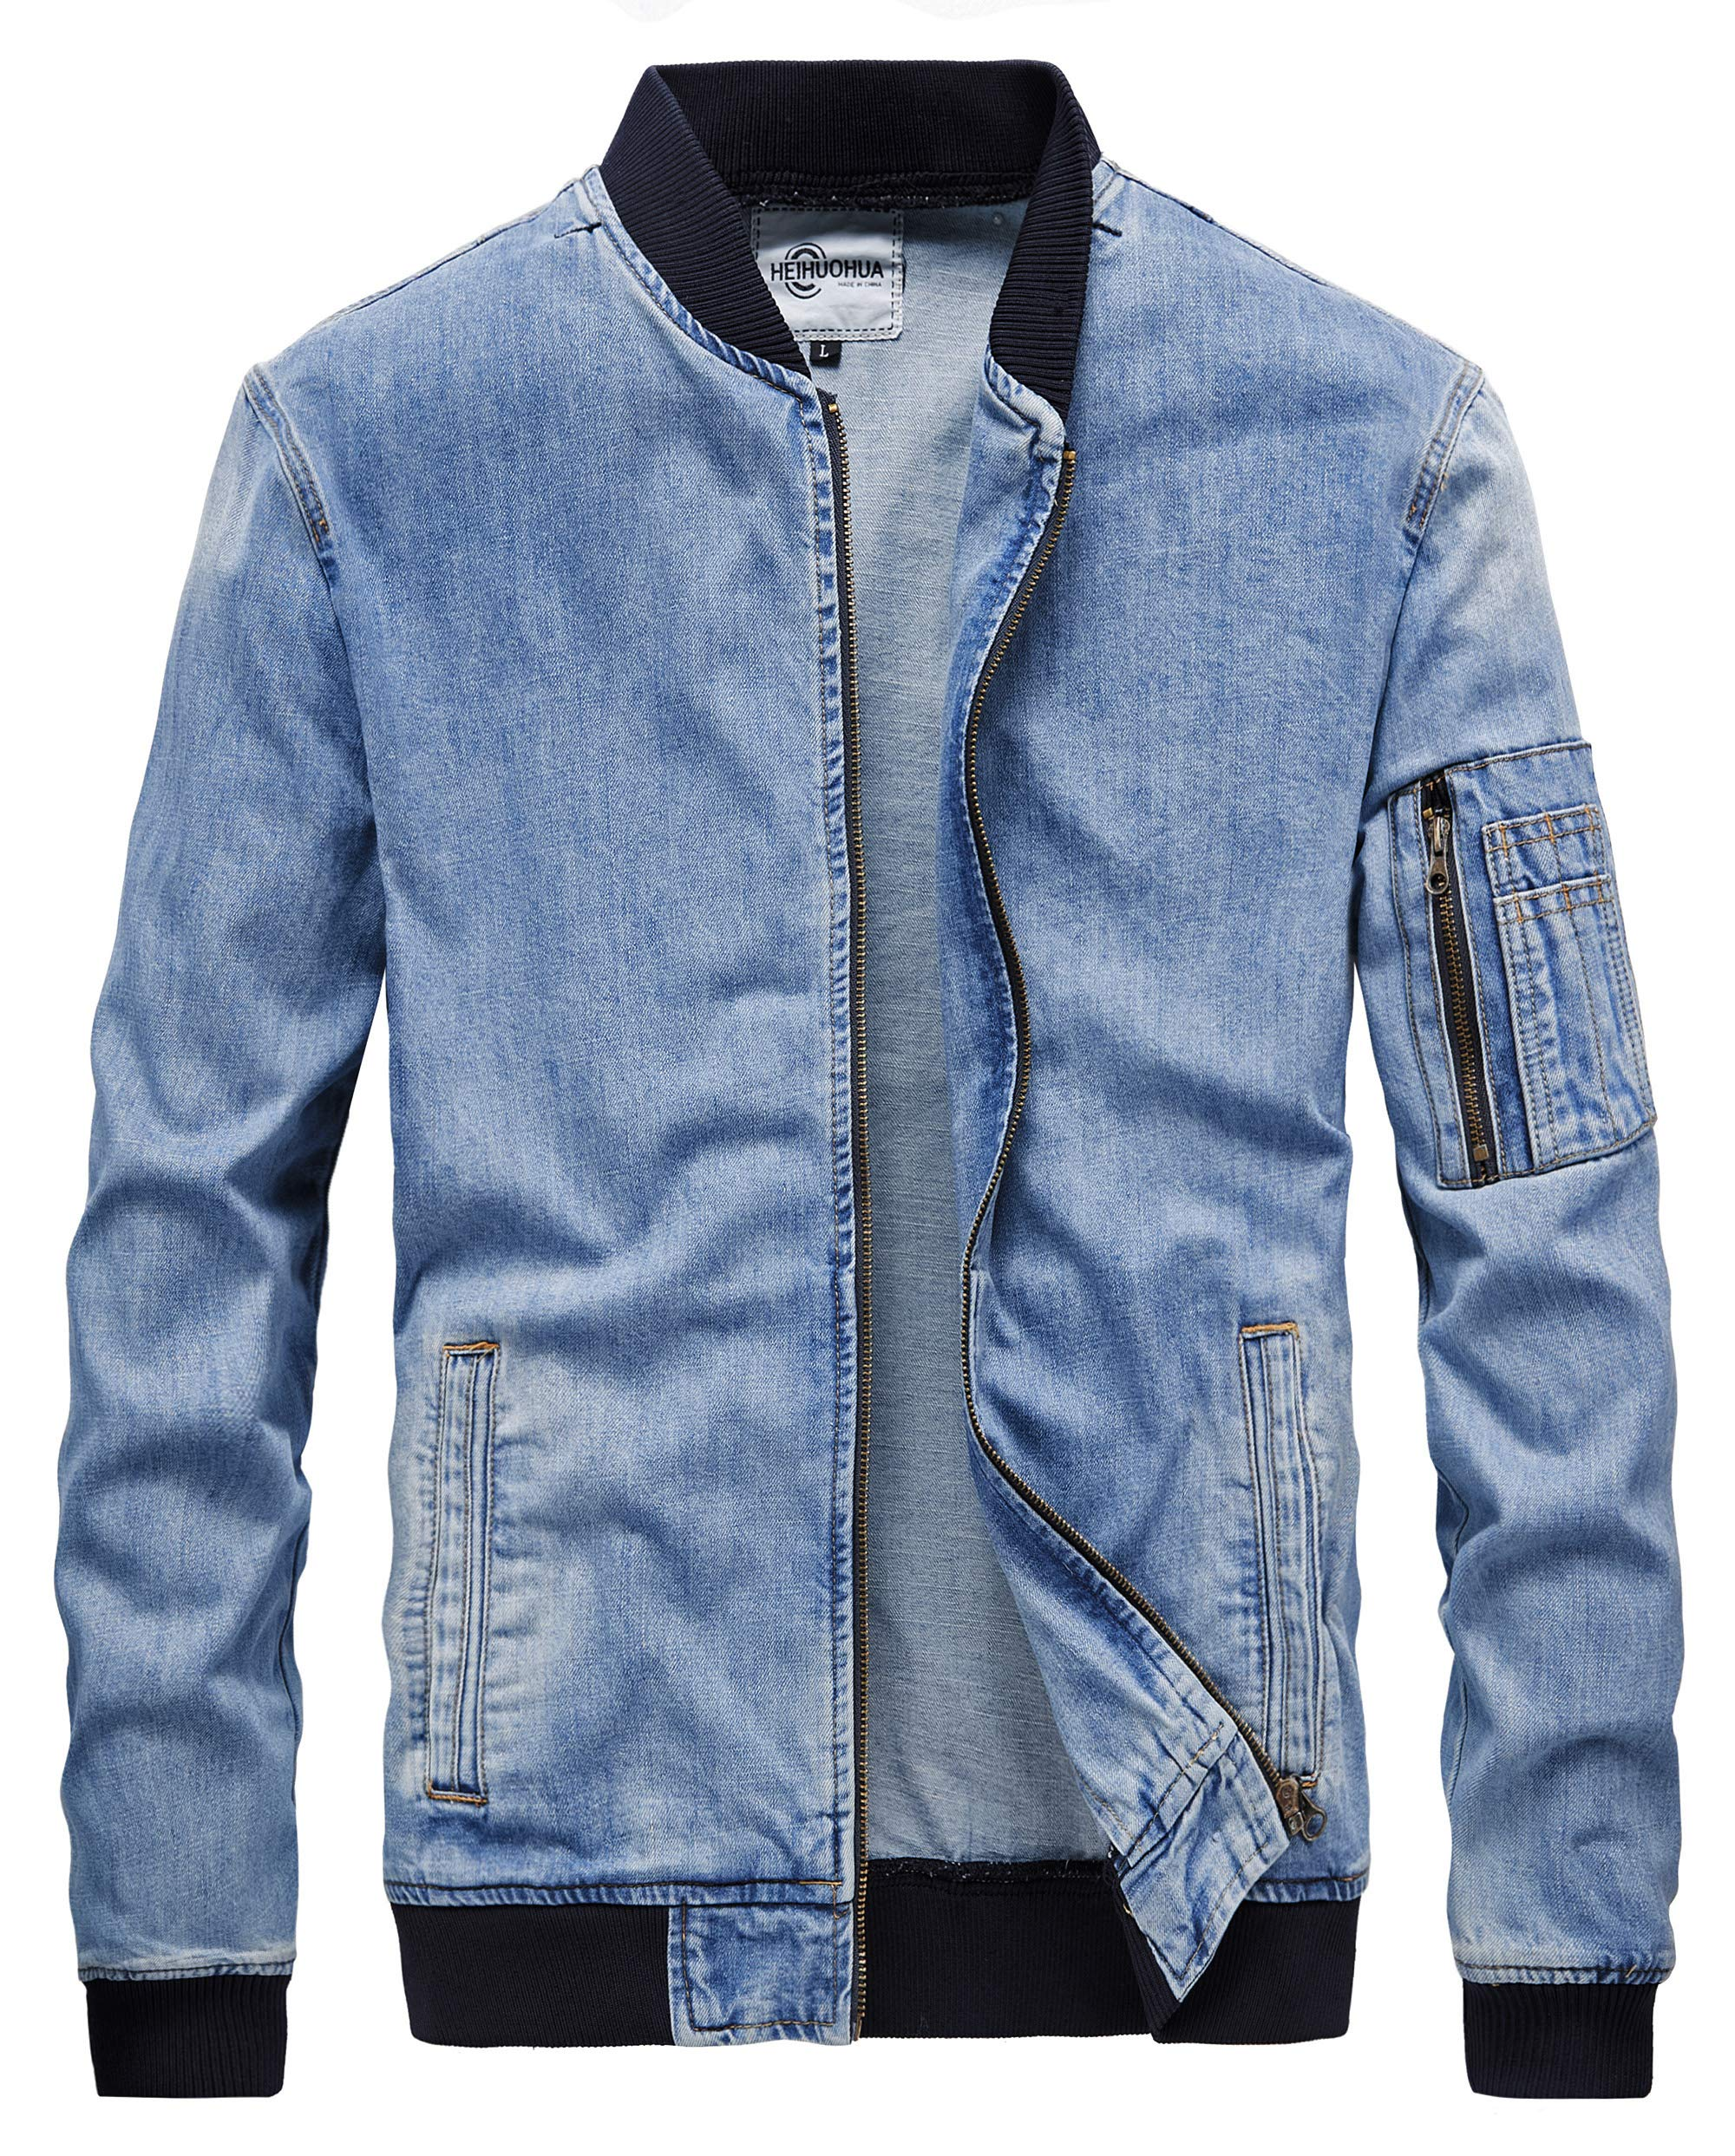 Heihuohua Men's Zip-Front Denim Bomber Jacket Classic Trucker Jean Jacket by Heihuohua